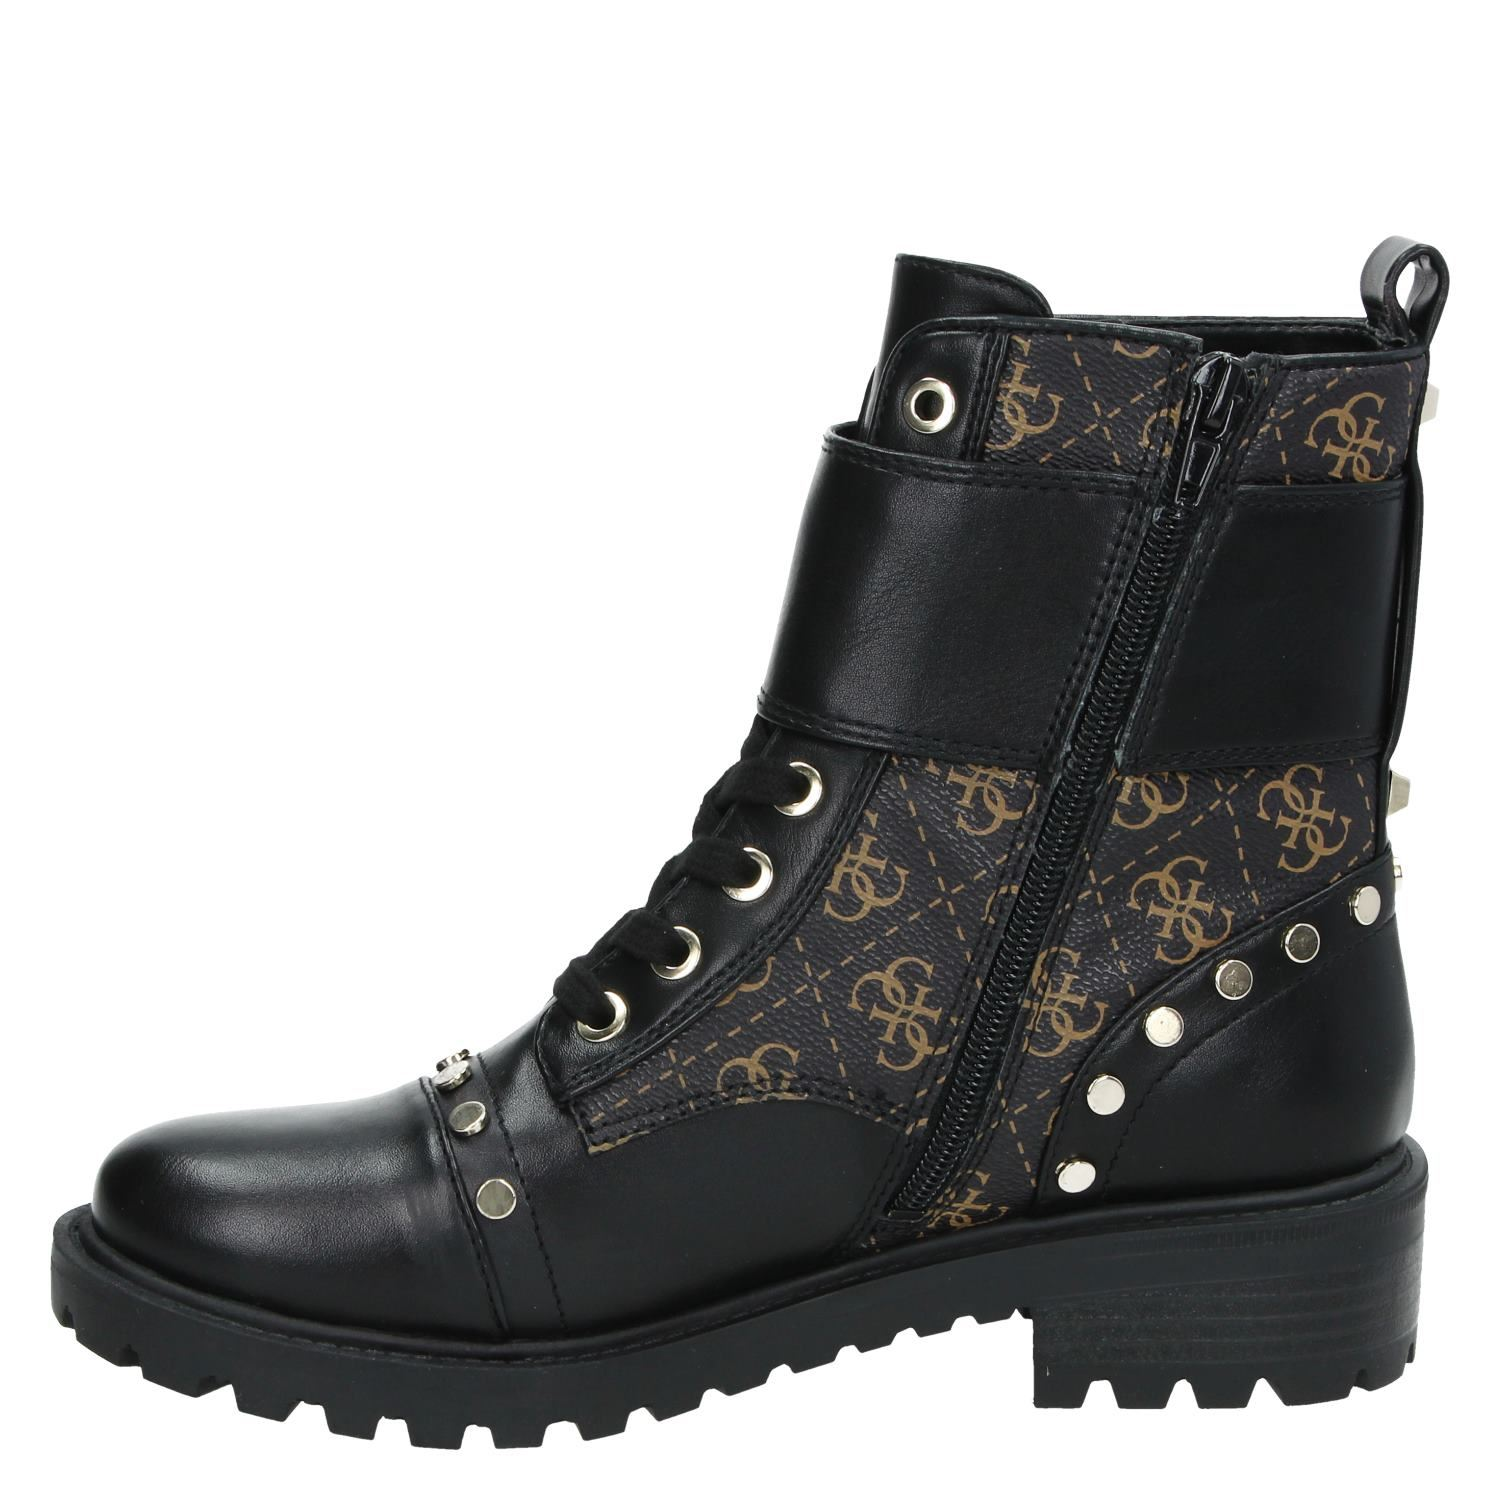 Guess - Veterboots voor dames - Multi 296a1IC